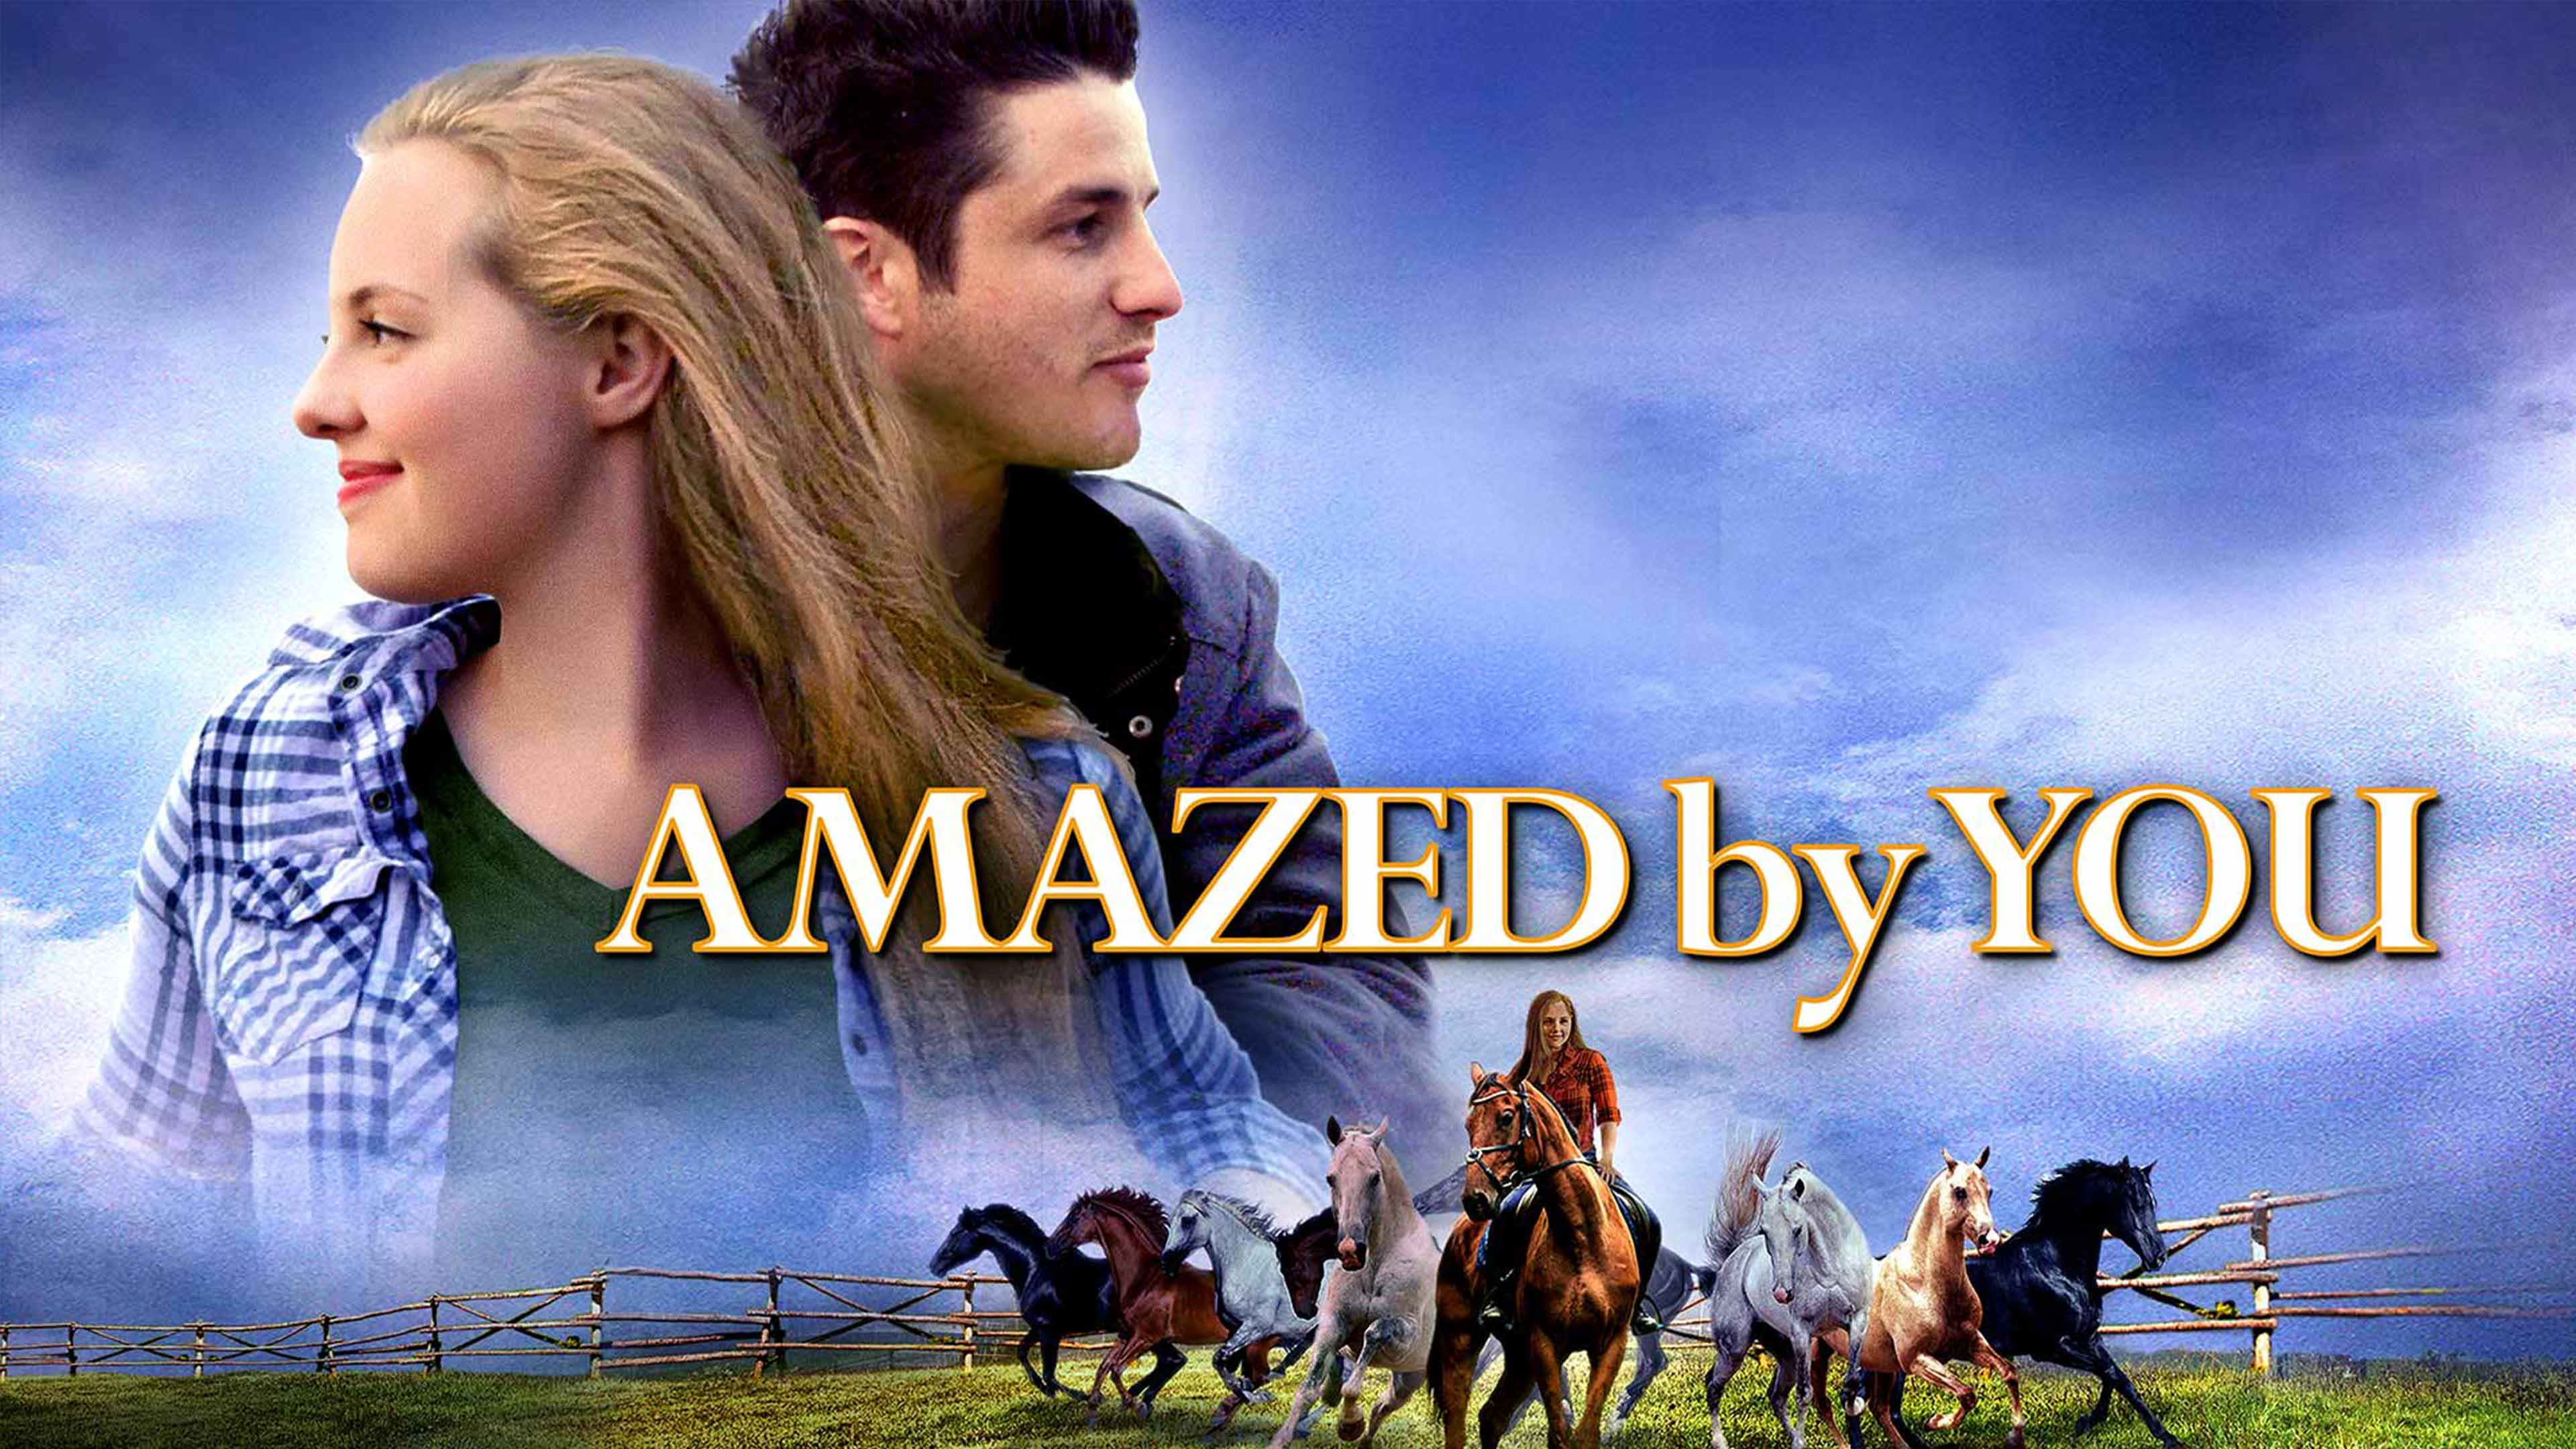 Amazed By You Trailer